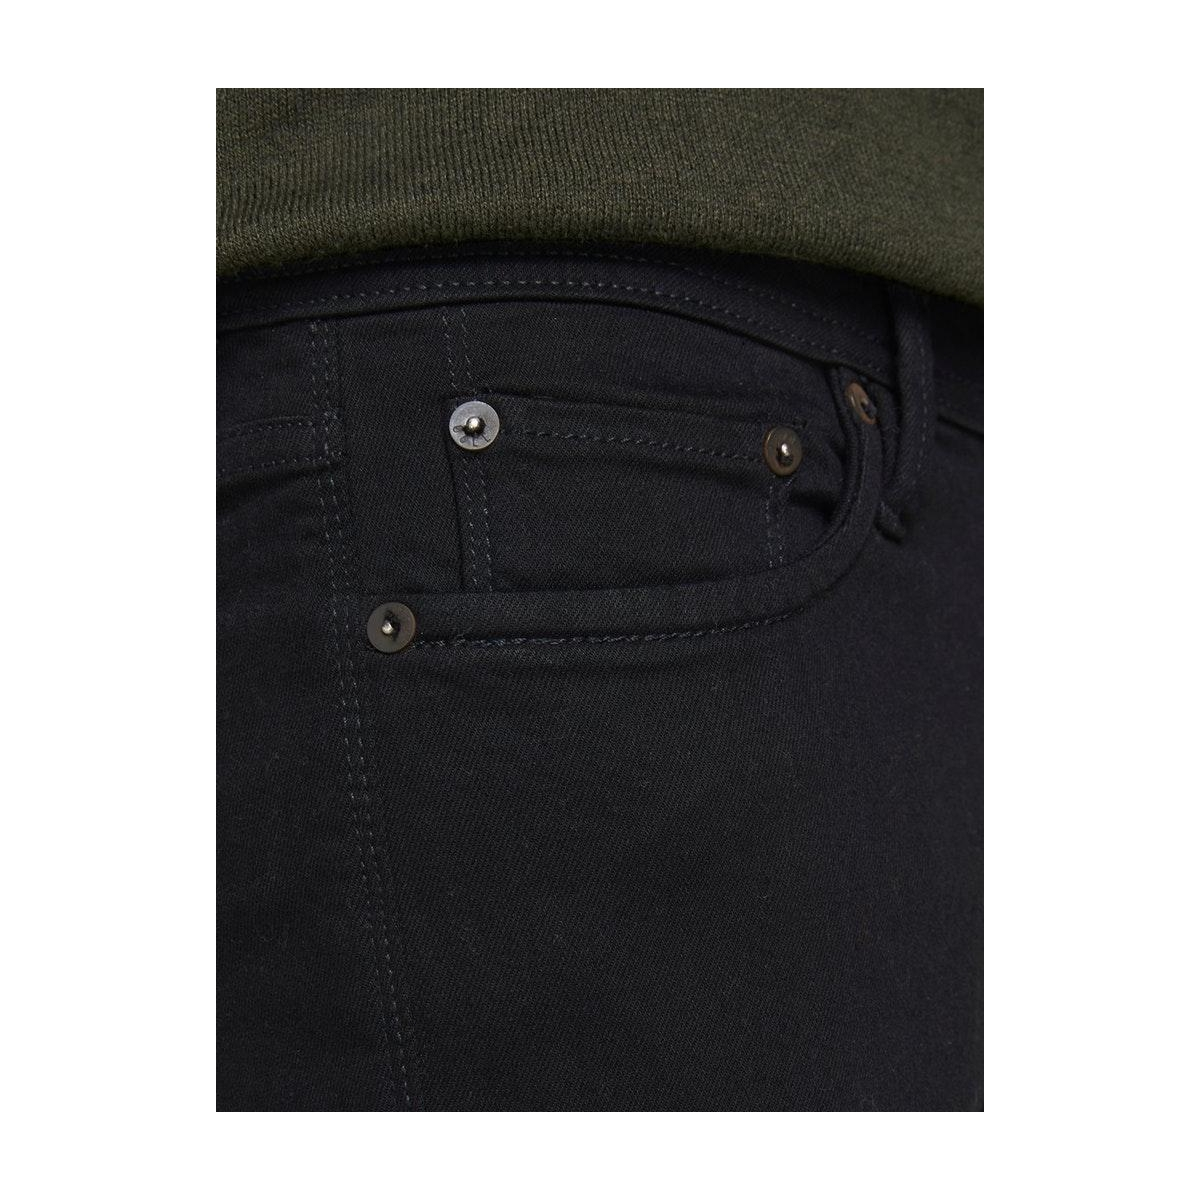 jjiglenn jjfelix am 046 50sps lid n 12113450 jack & jones jeans black denim